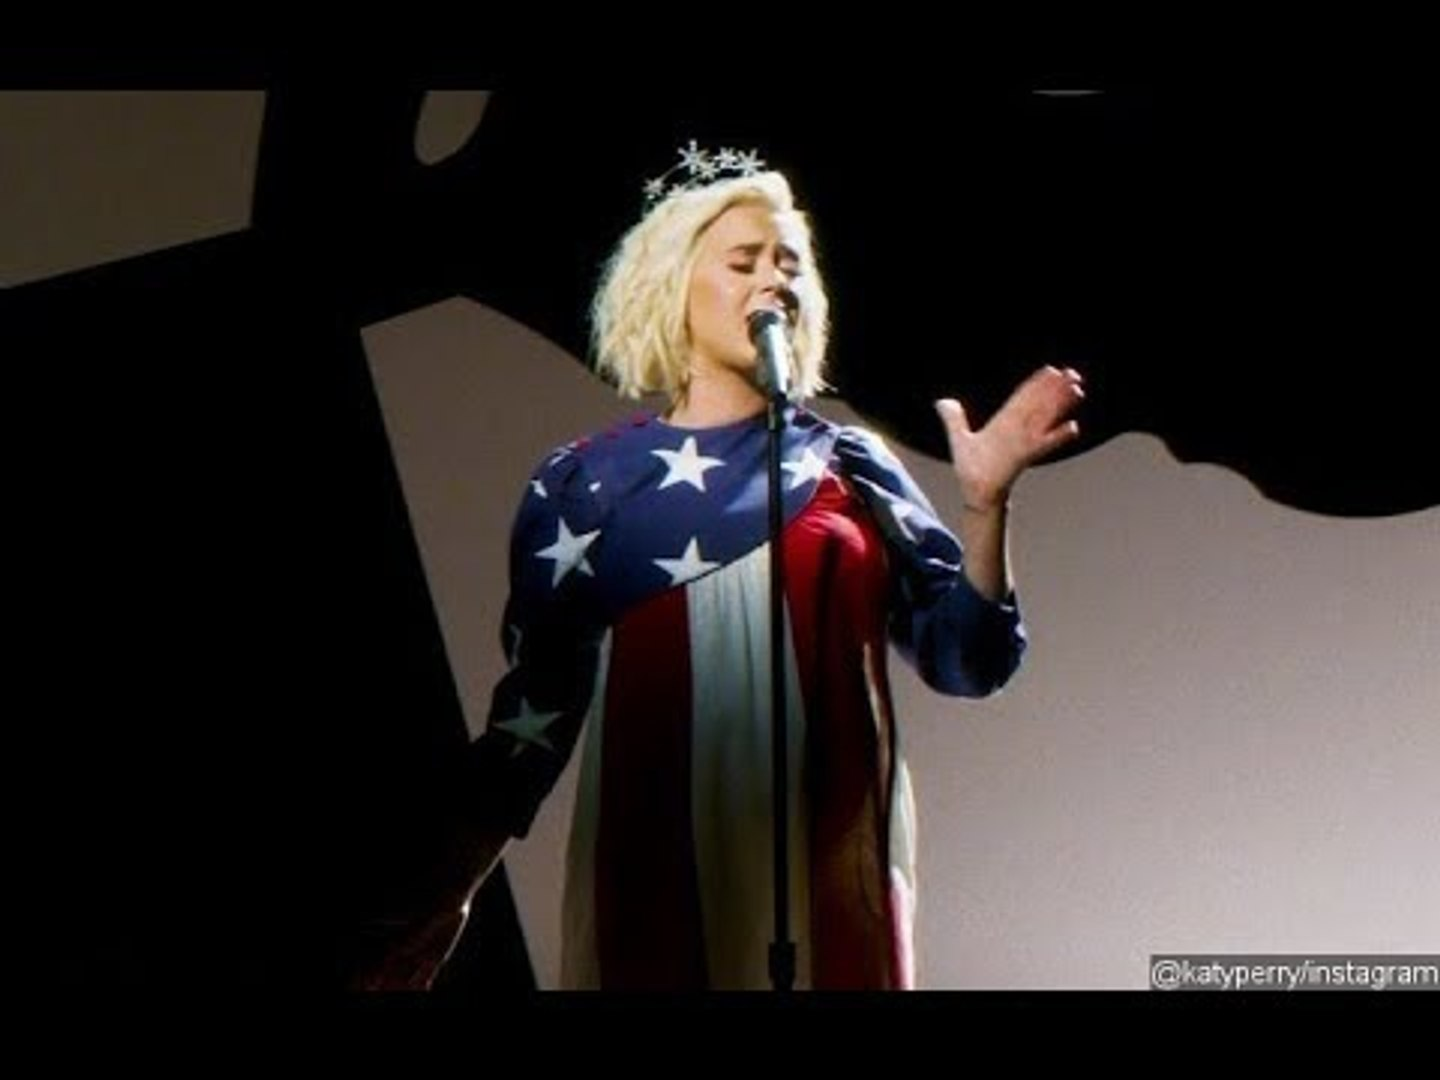 Performances: 'Rock the Vote' Virtual Concert [Katy Perry, Black Eyed Peas] #ICYMI